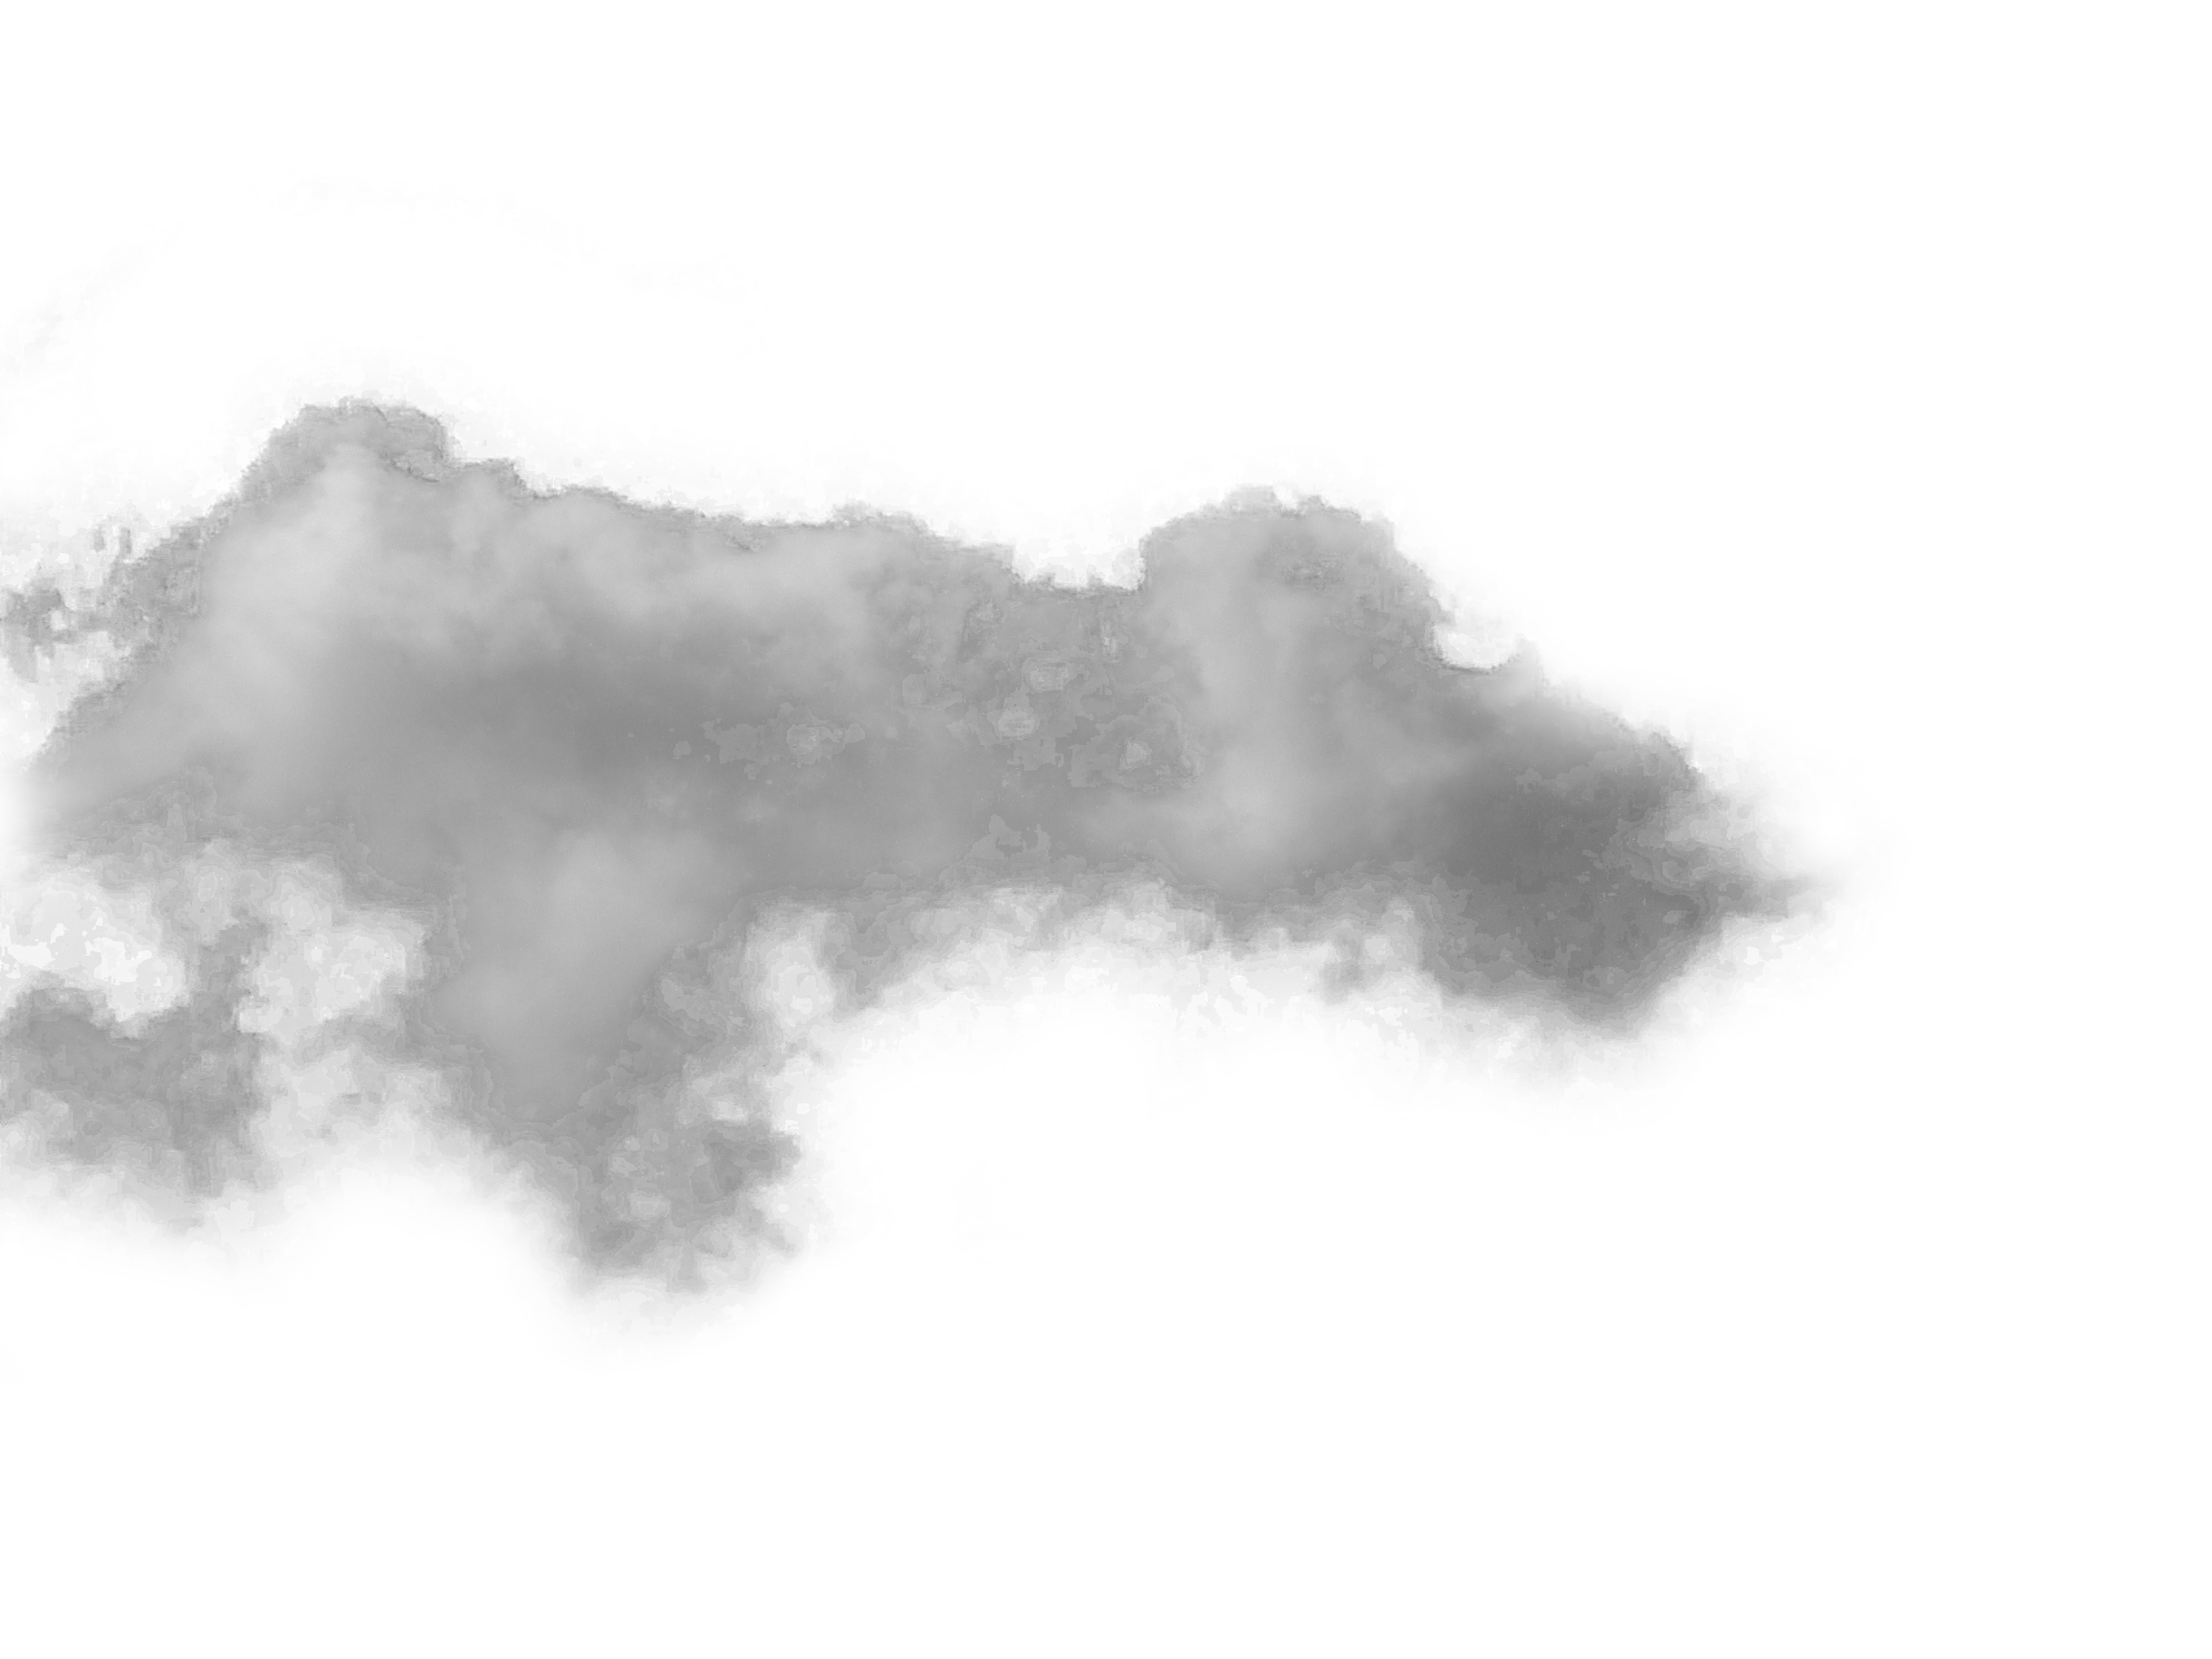 Cloud of smoke png. Mist image mart